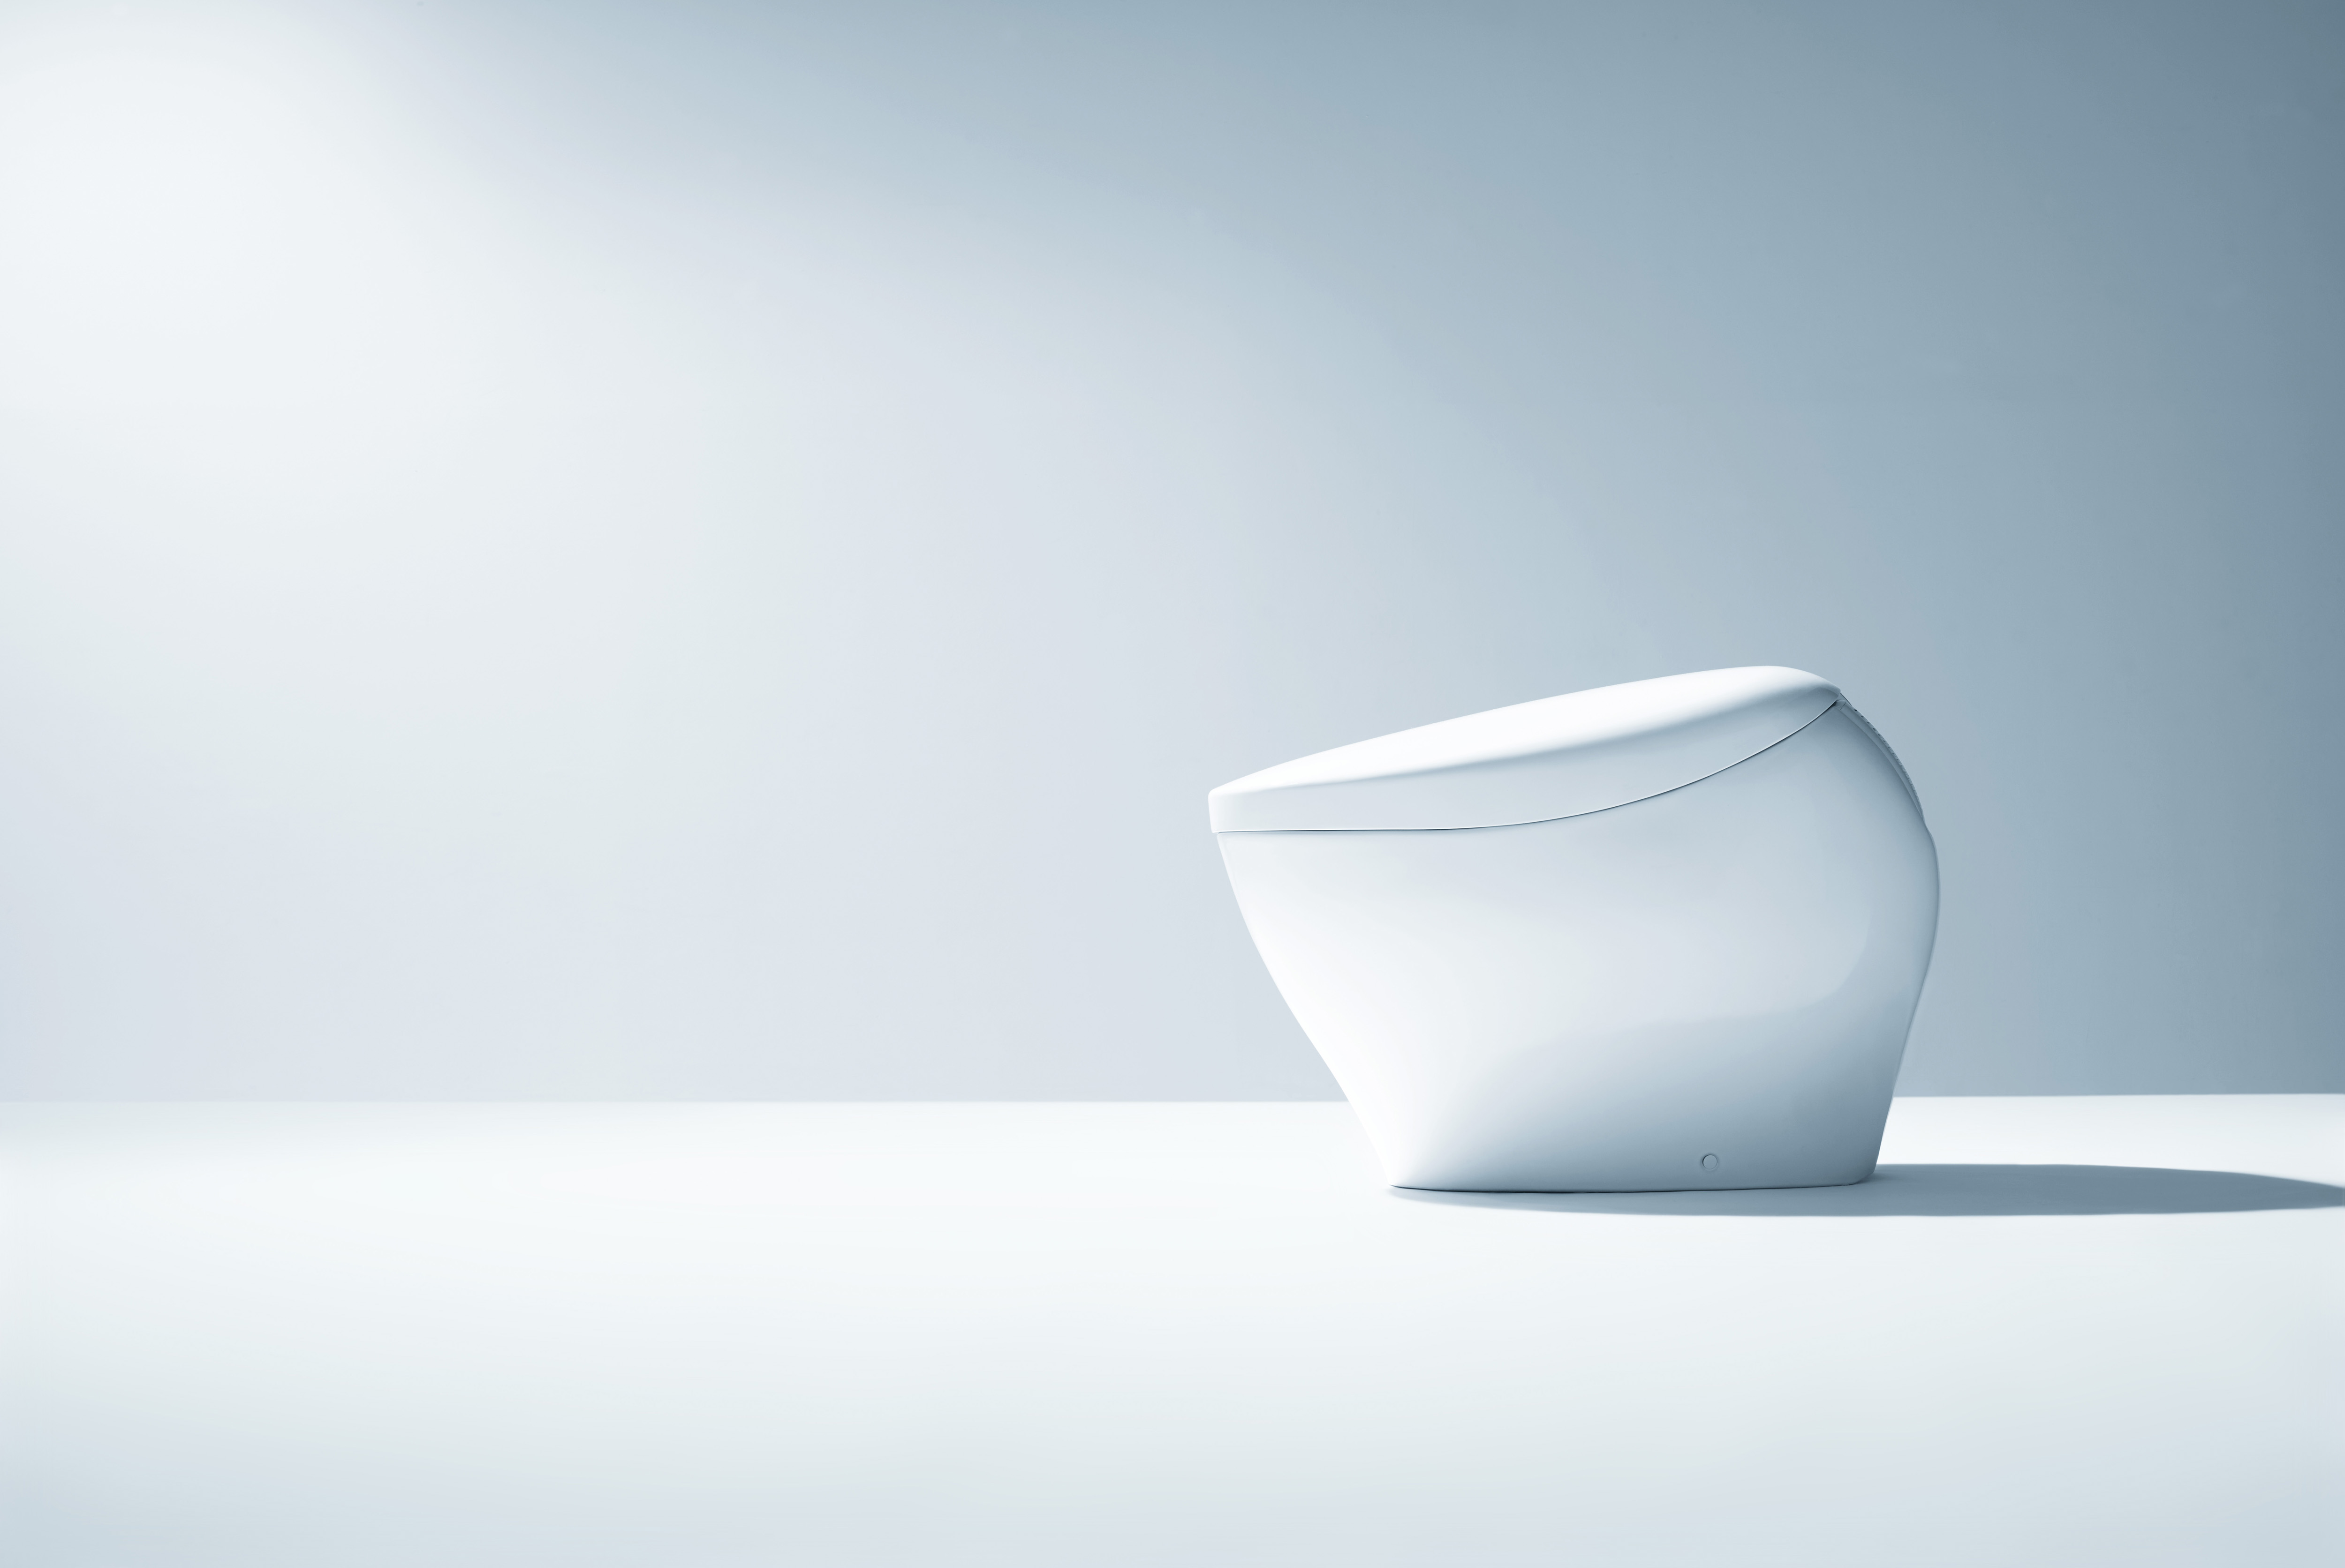 Toilette Toto Toto Launches High End Washlet Bidet Toilets Globally The Japan